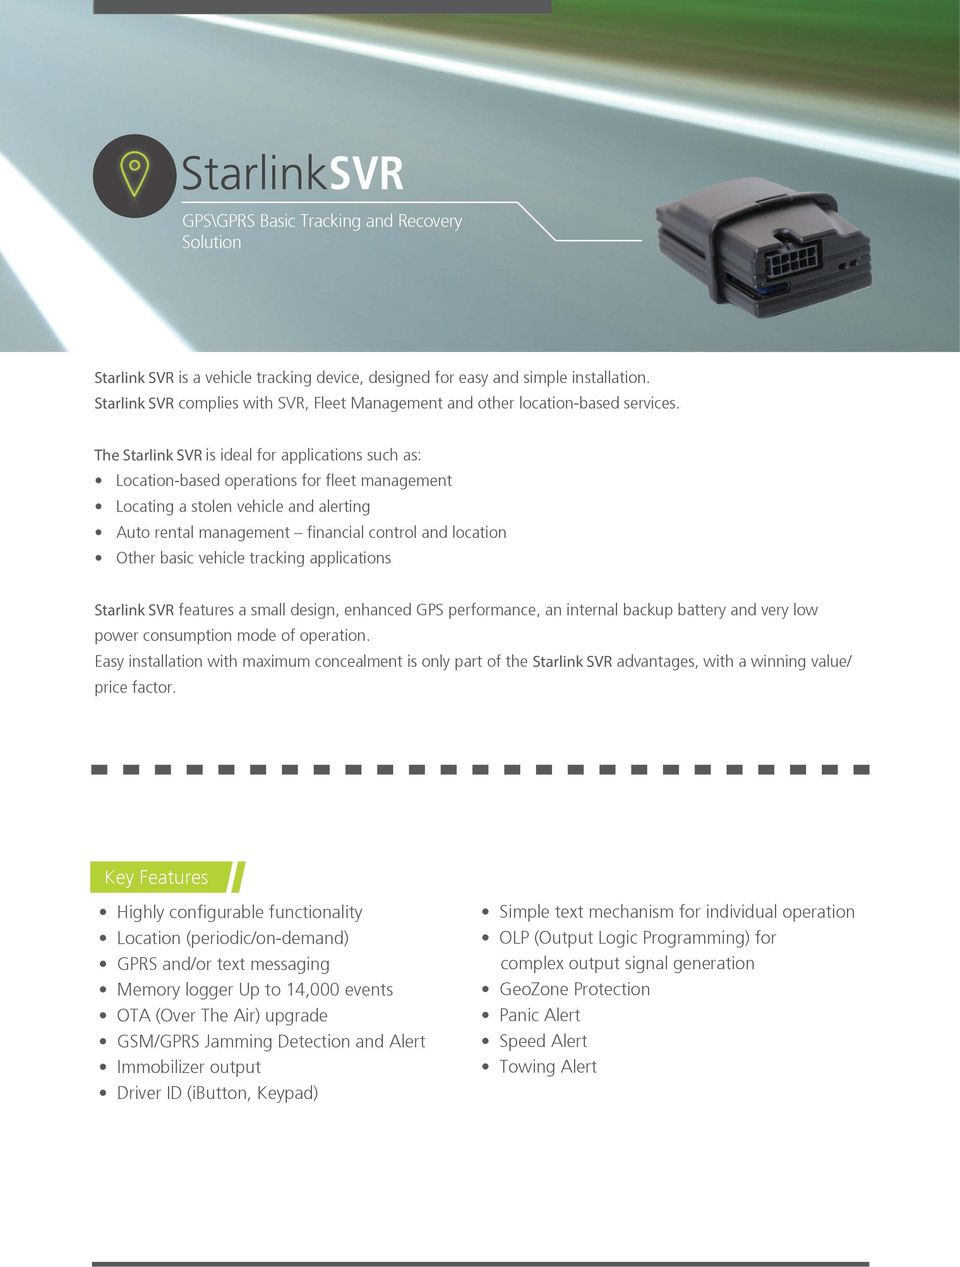 The Starlink SVR is ideal for applications such as: Location-based operations for fleet management Locating a stolen vehicle and alerting Auto rental management financial control and location Other